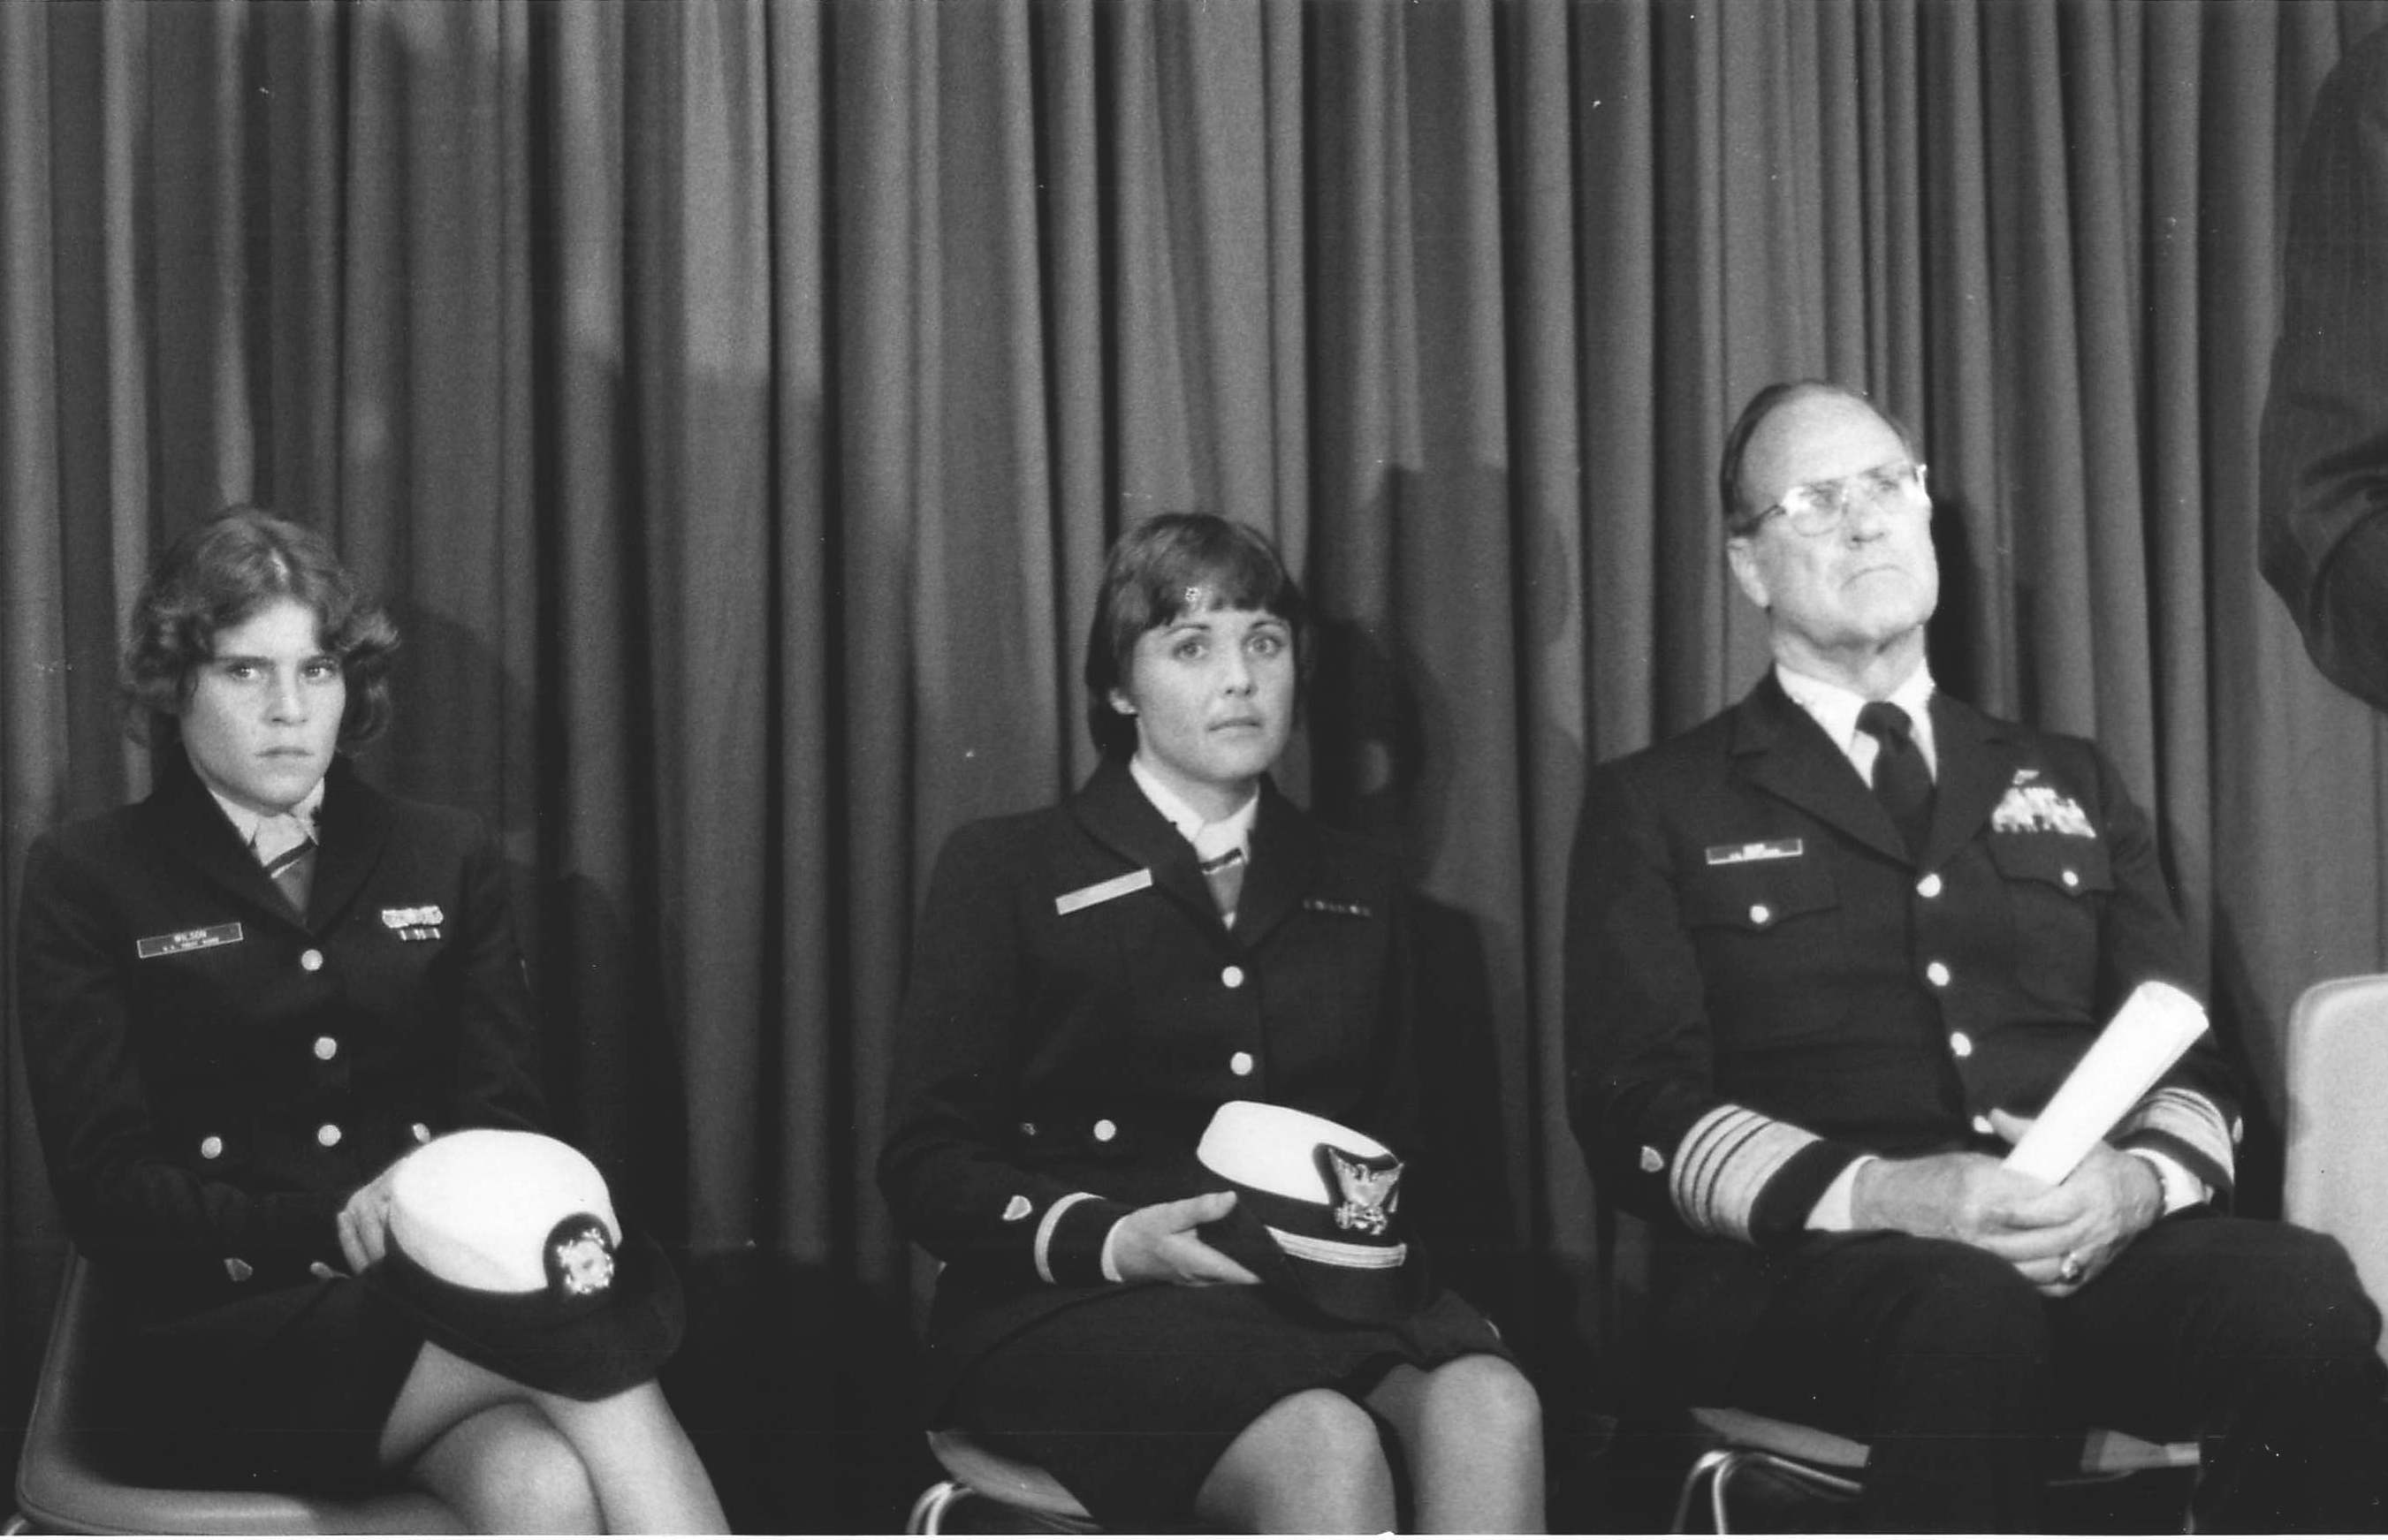 6.	Commandant Owen Siler with female pioneers Petty Officer 3rd Class Debra Wilson and Ensign Beverly Kelley awaiting a press conference.